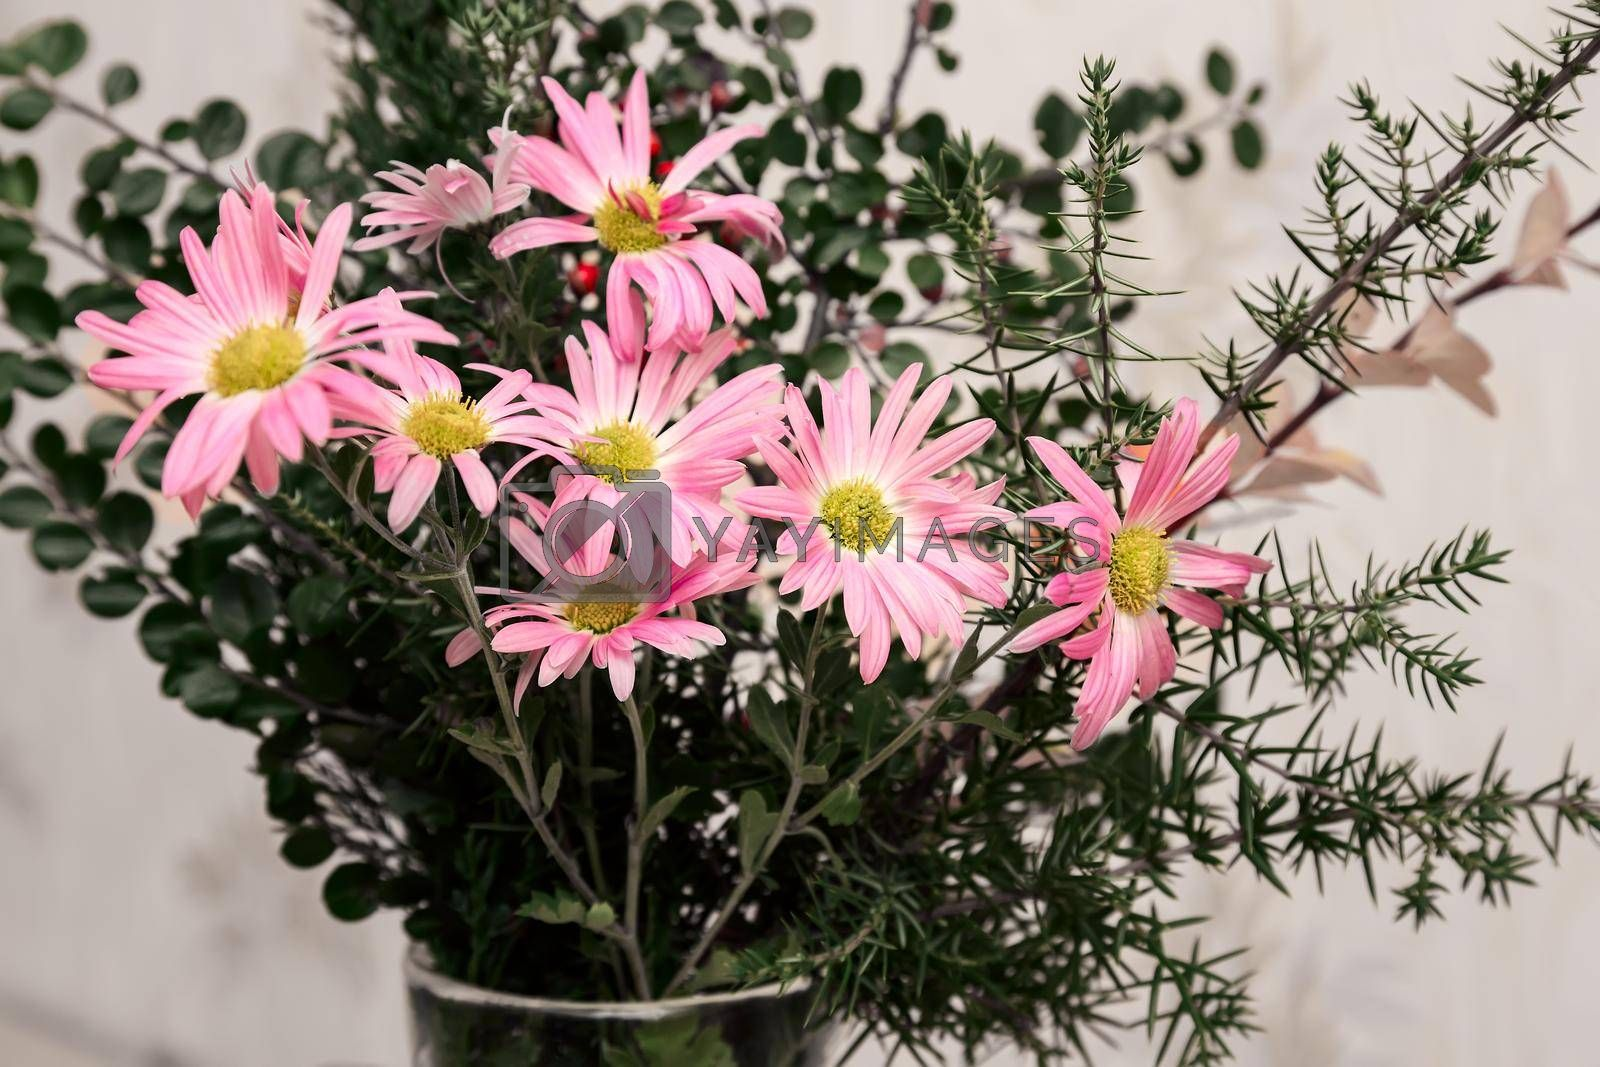 On the table in a glass vase bouquet of beautiful pink autumn chrysanthemums.